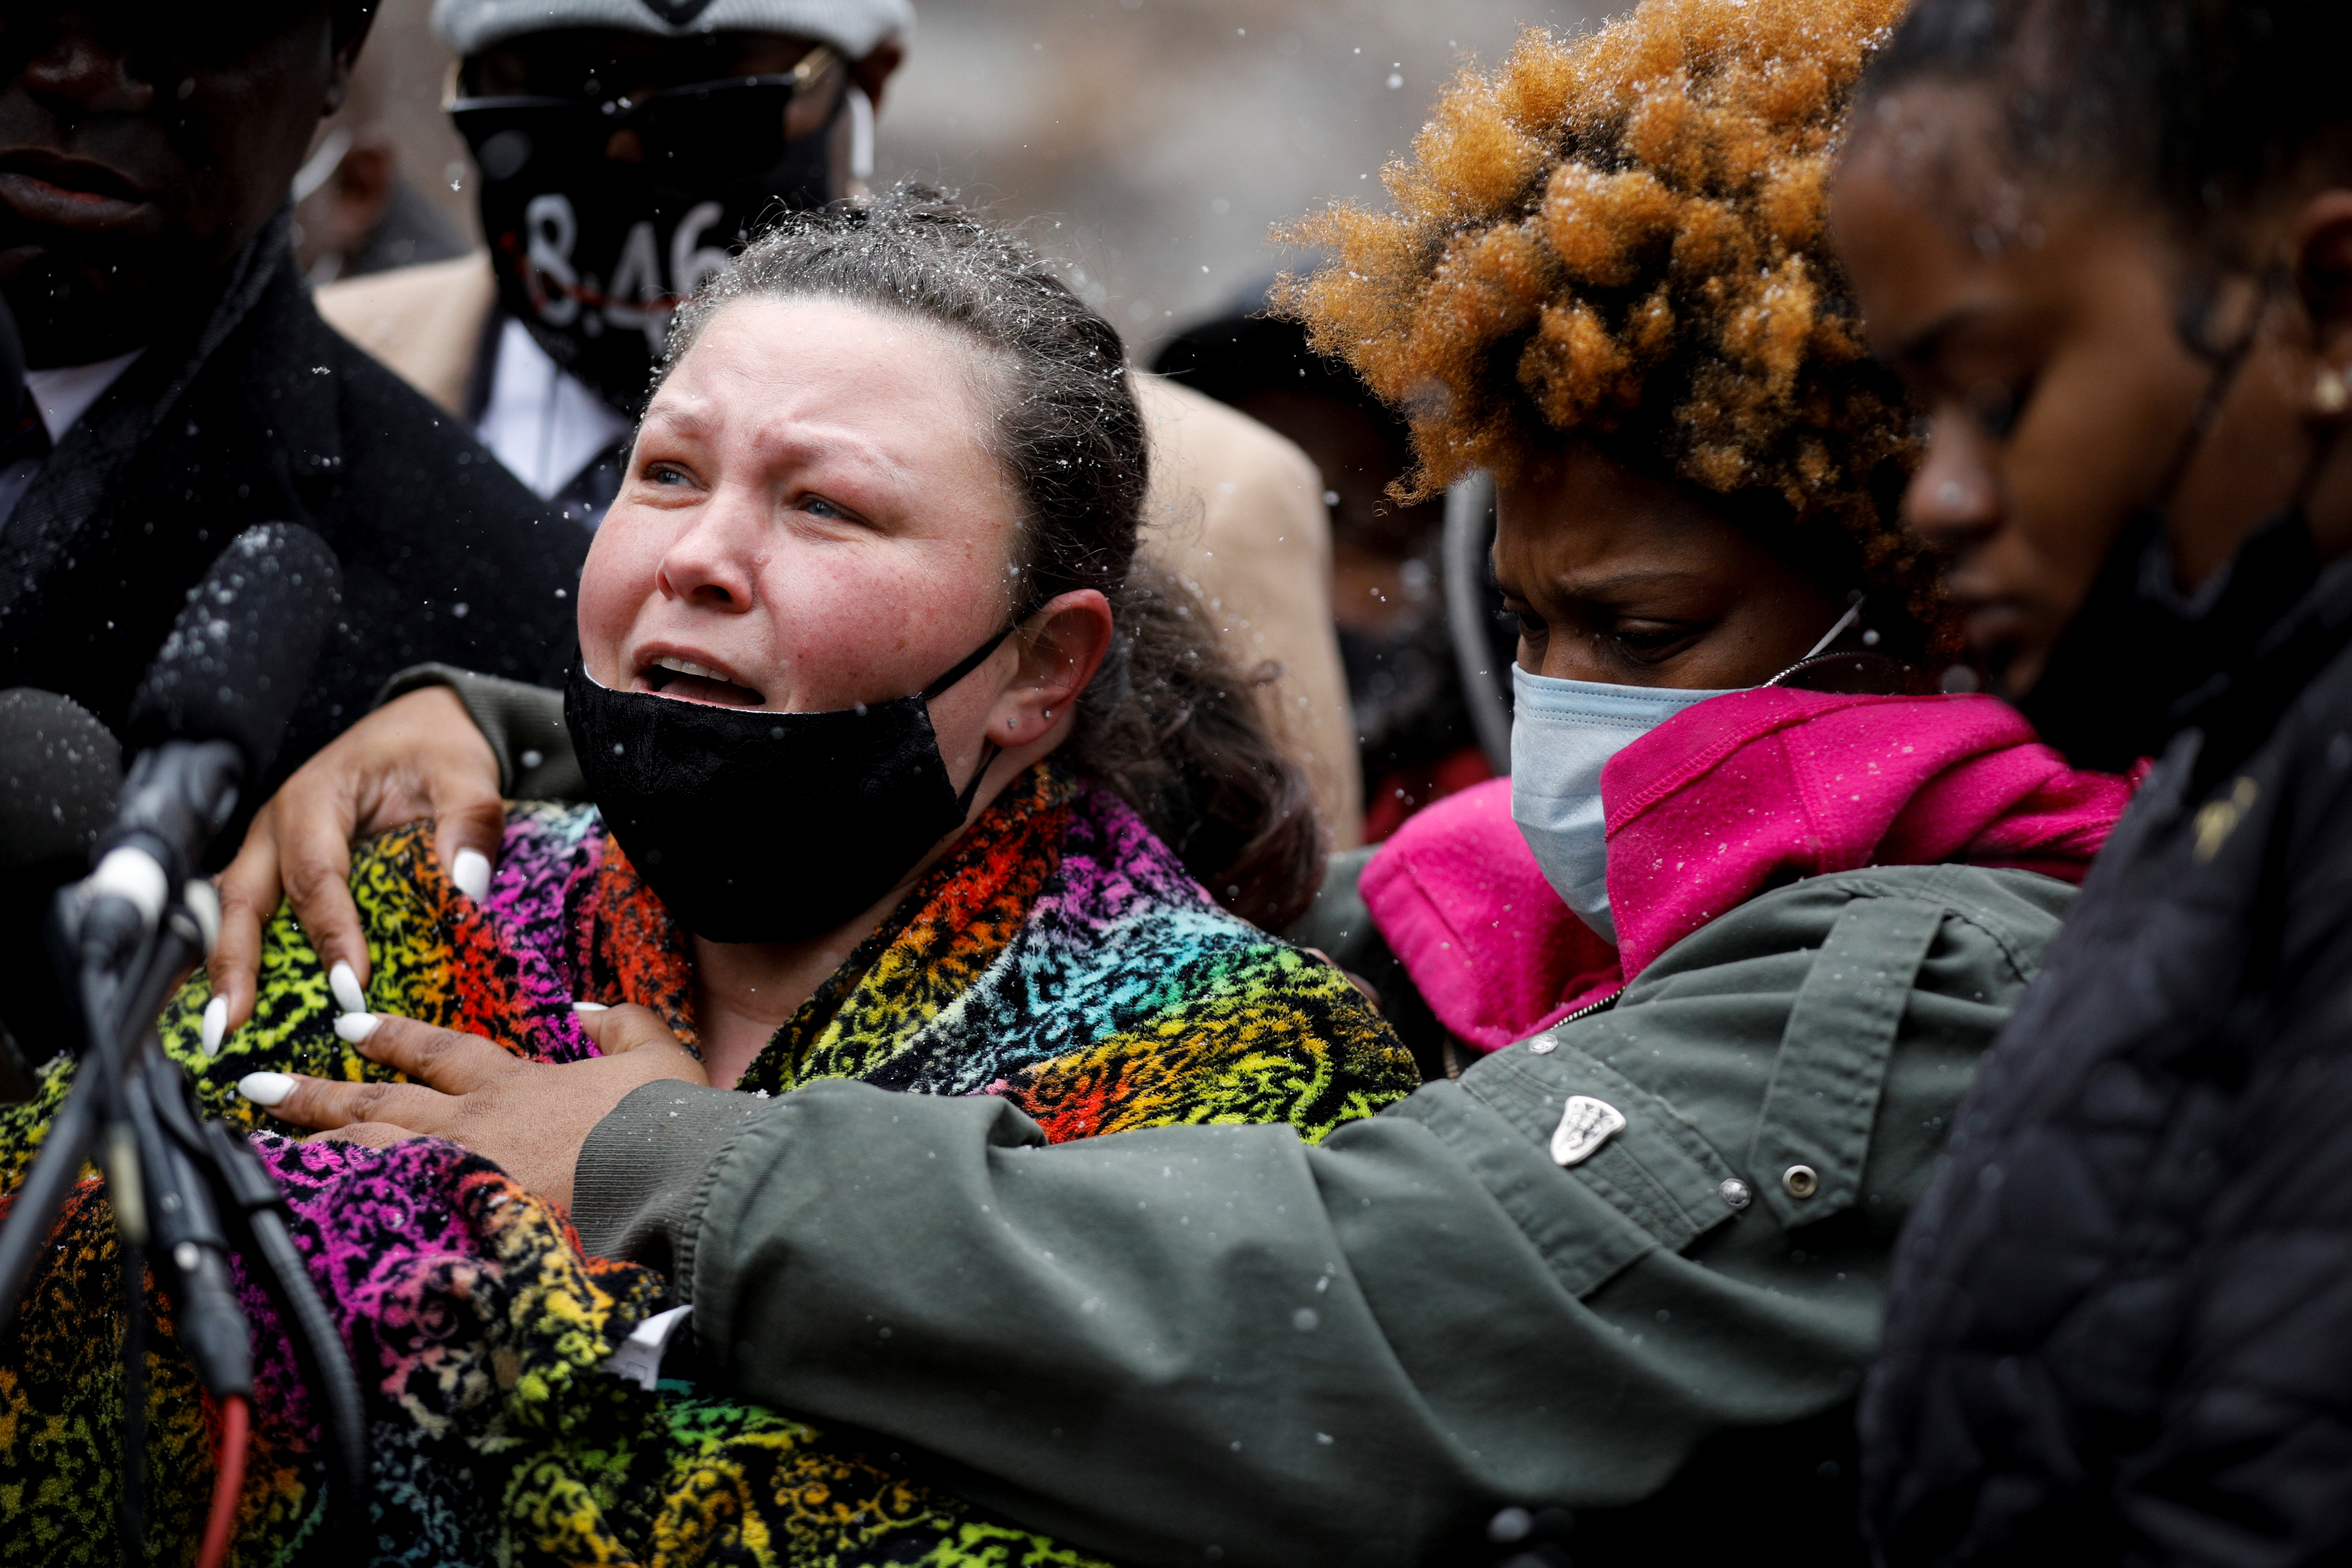 Katie Wright, Daunte Wright's mother, addresses the media during a press conference outside the Hennepin County Government Center after an officer-involved killing of Daunte Wright, 20, following a traffic stop in Minneapolis, Minnesota, U.S., April 13, 2021. REUTERS/Nicholas Pfosi